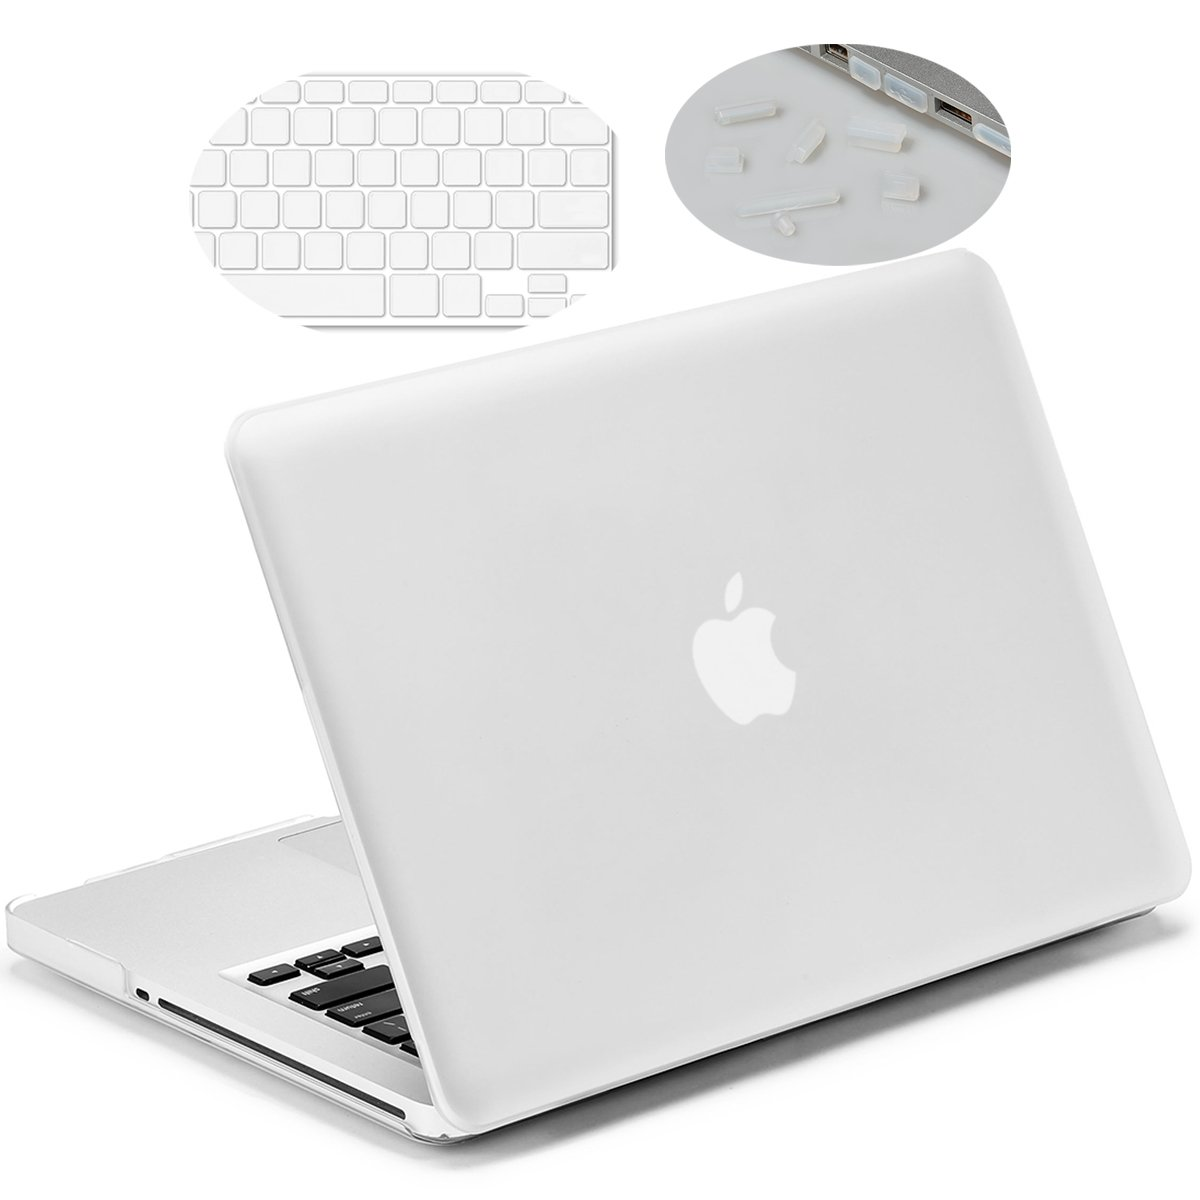 reputable site caf35 b124d LENTION Hard Case for MacBook Pro (13-inch, Late 2008 to Mid 2012) - Model  A1278, with Keyboard Cover and Port Plugs, Matte Finish Case with Rubber ...